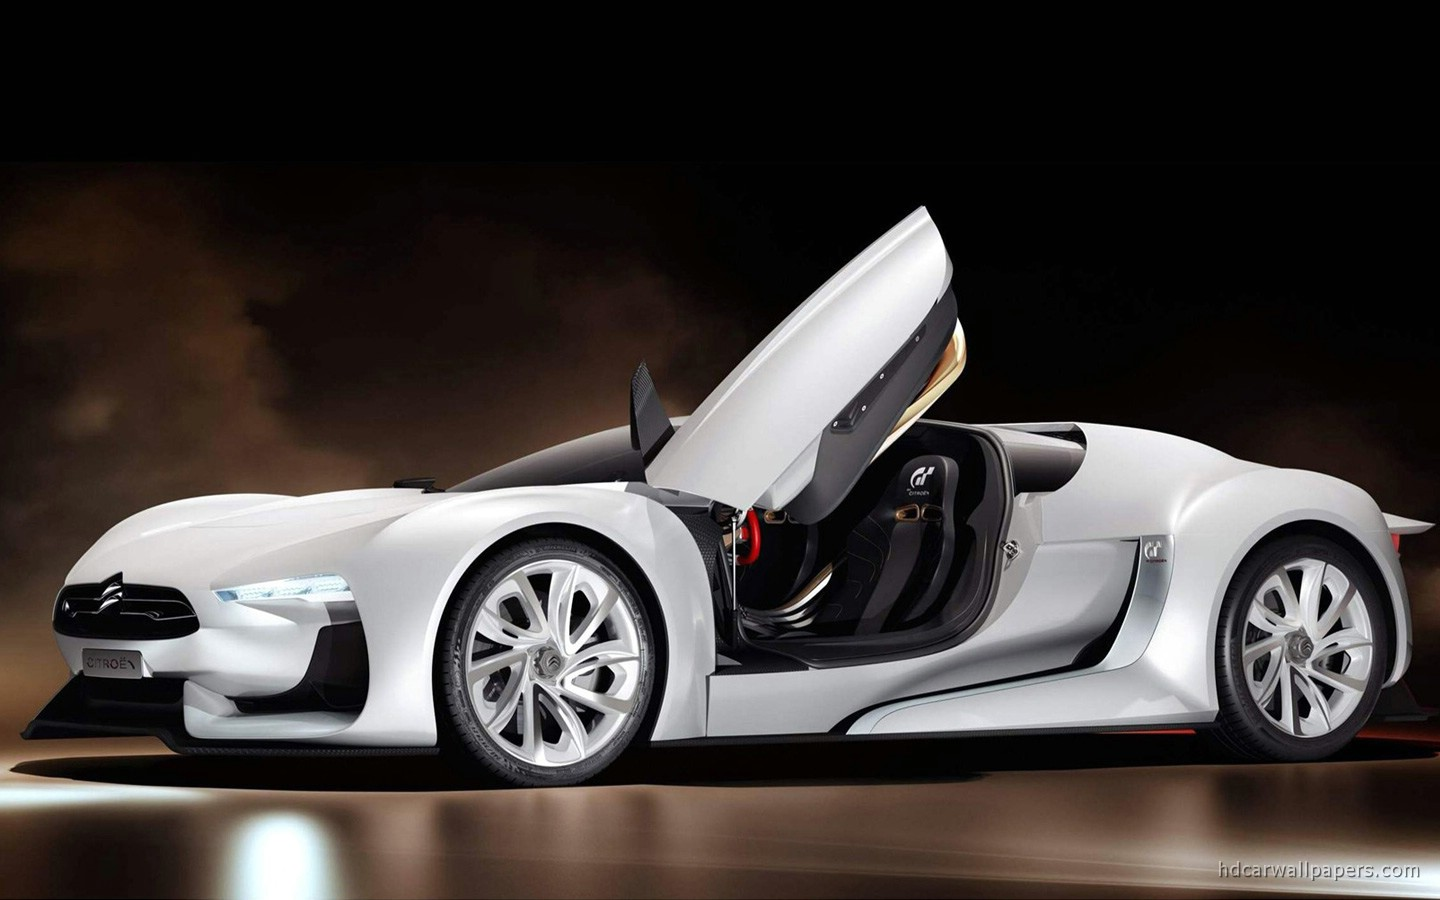 Citroen Supercar Concept Wallpaper HD Car Wallpapers 1440x900